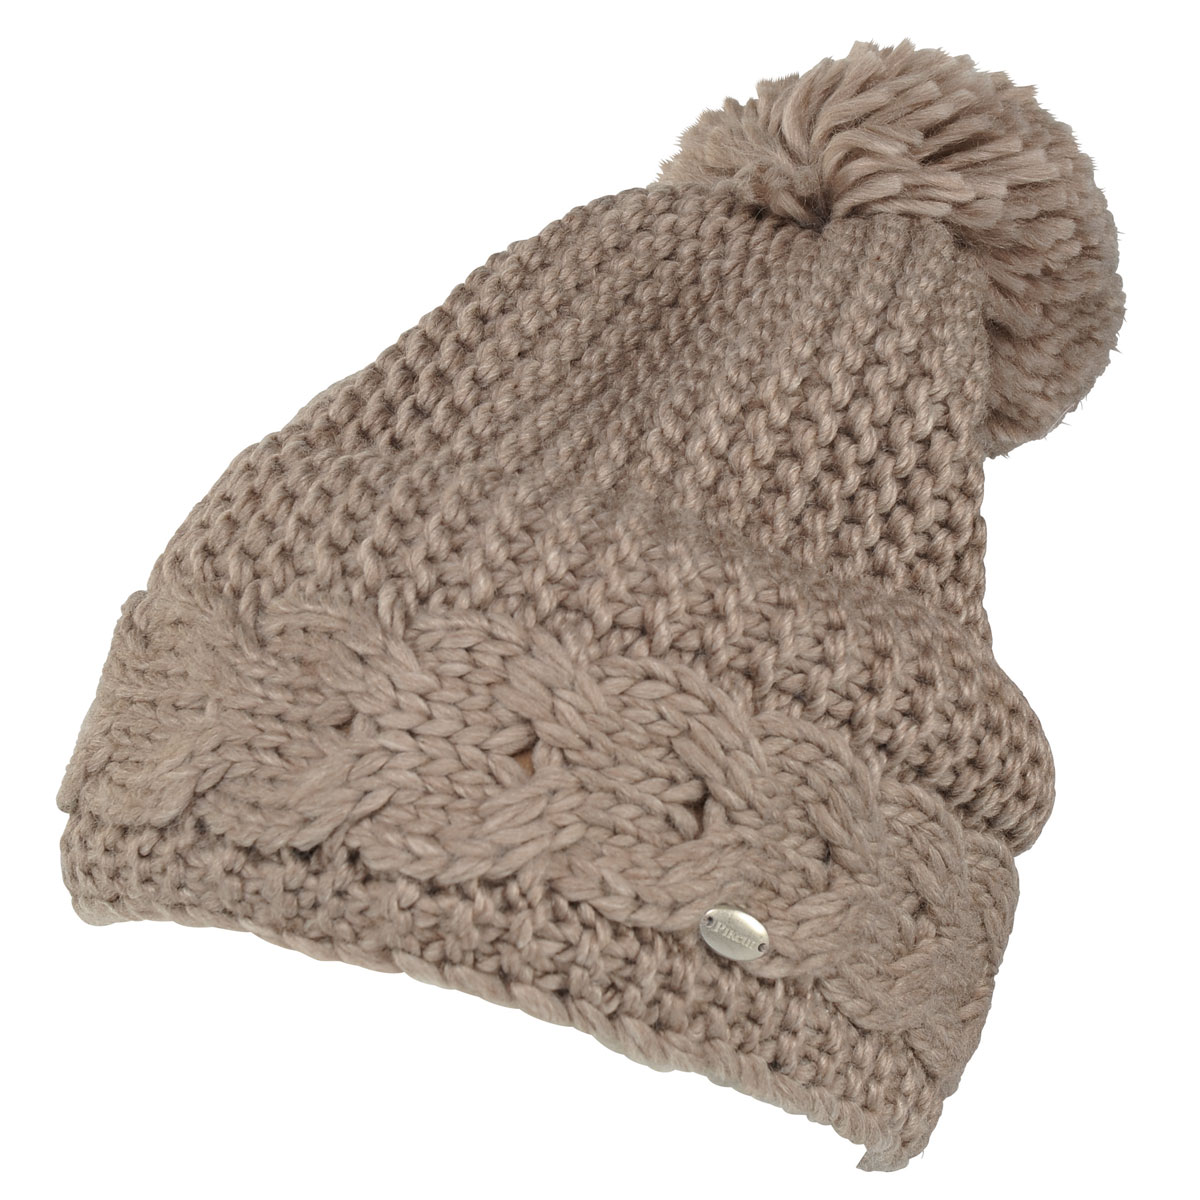 0b15e846ffc Pikeur Cable Knit Bobble Hat - Light Taupe - Redpost Equestrian